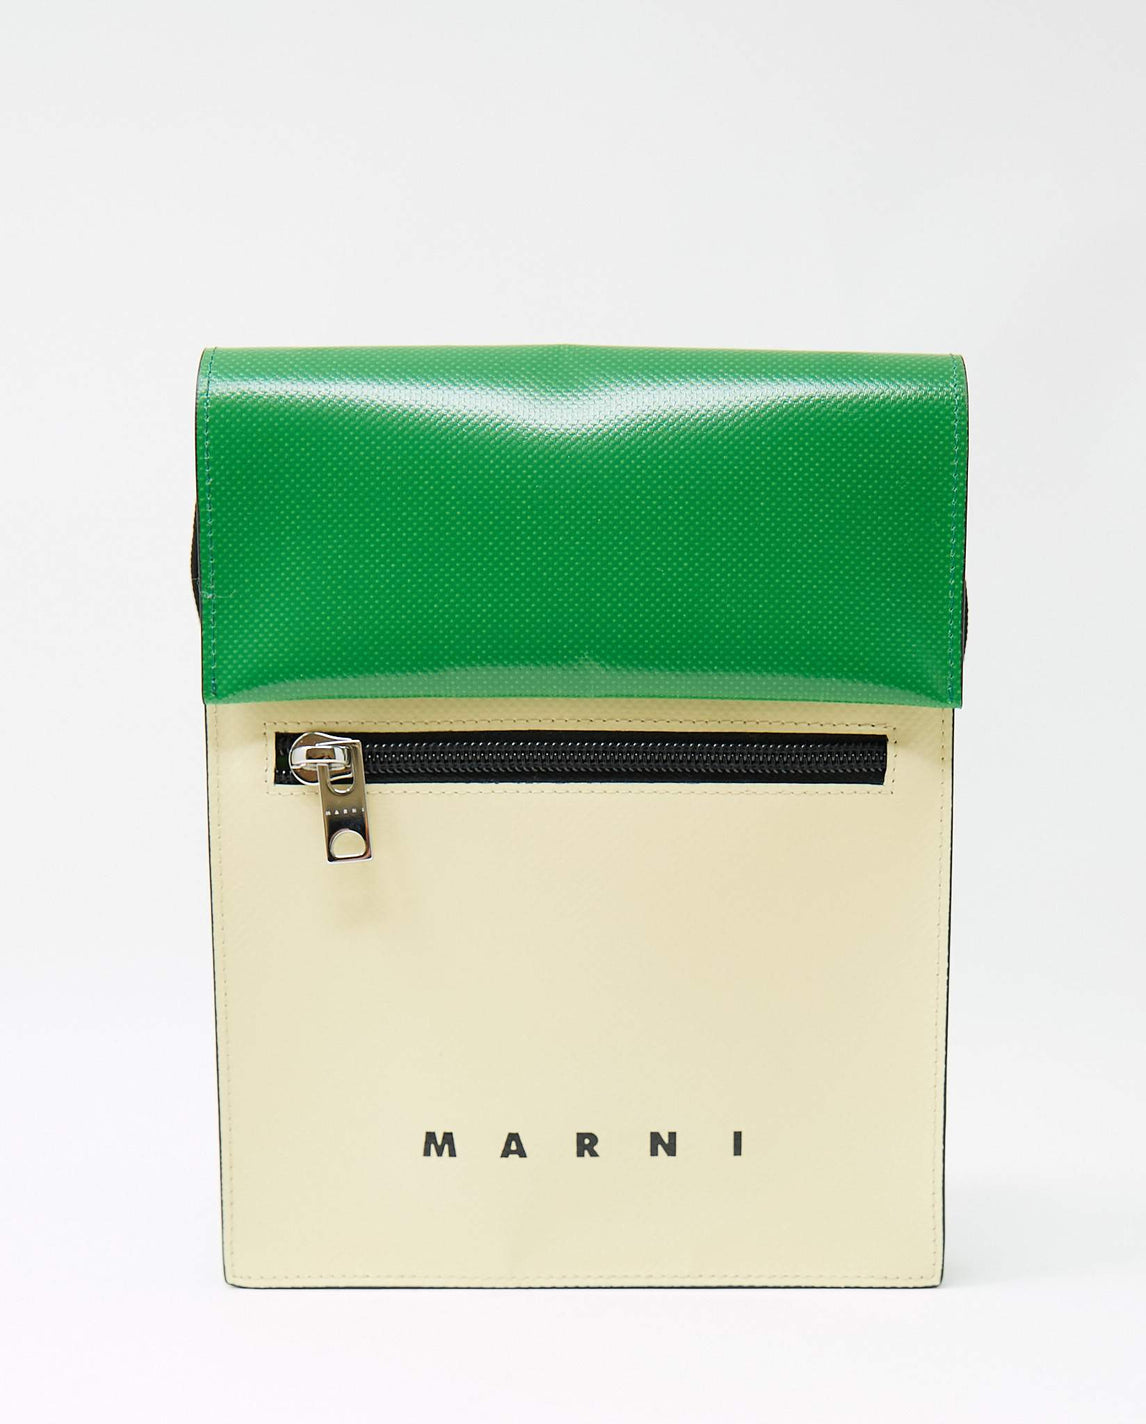 Crossbody Shoulder Bag - Green / Off White UNISEX MARNI